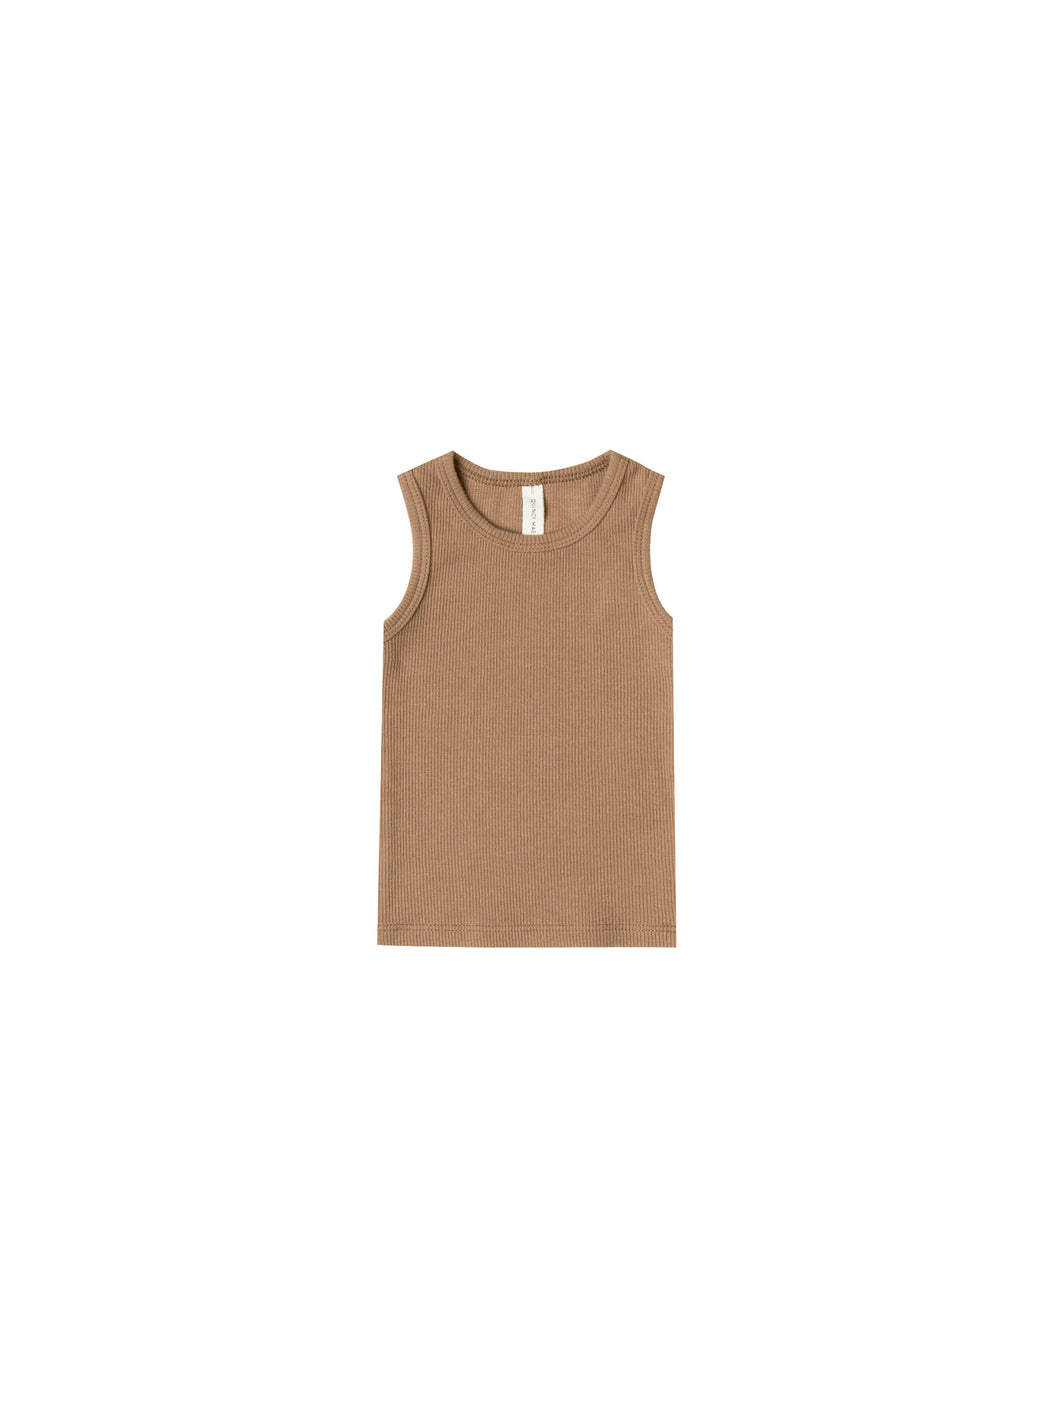 Ribbed Tank - Copper